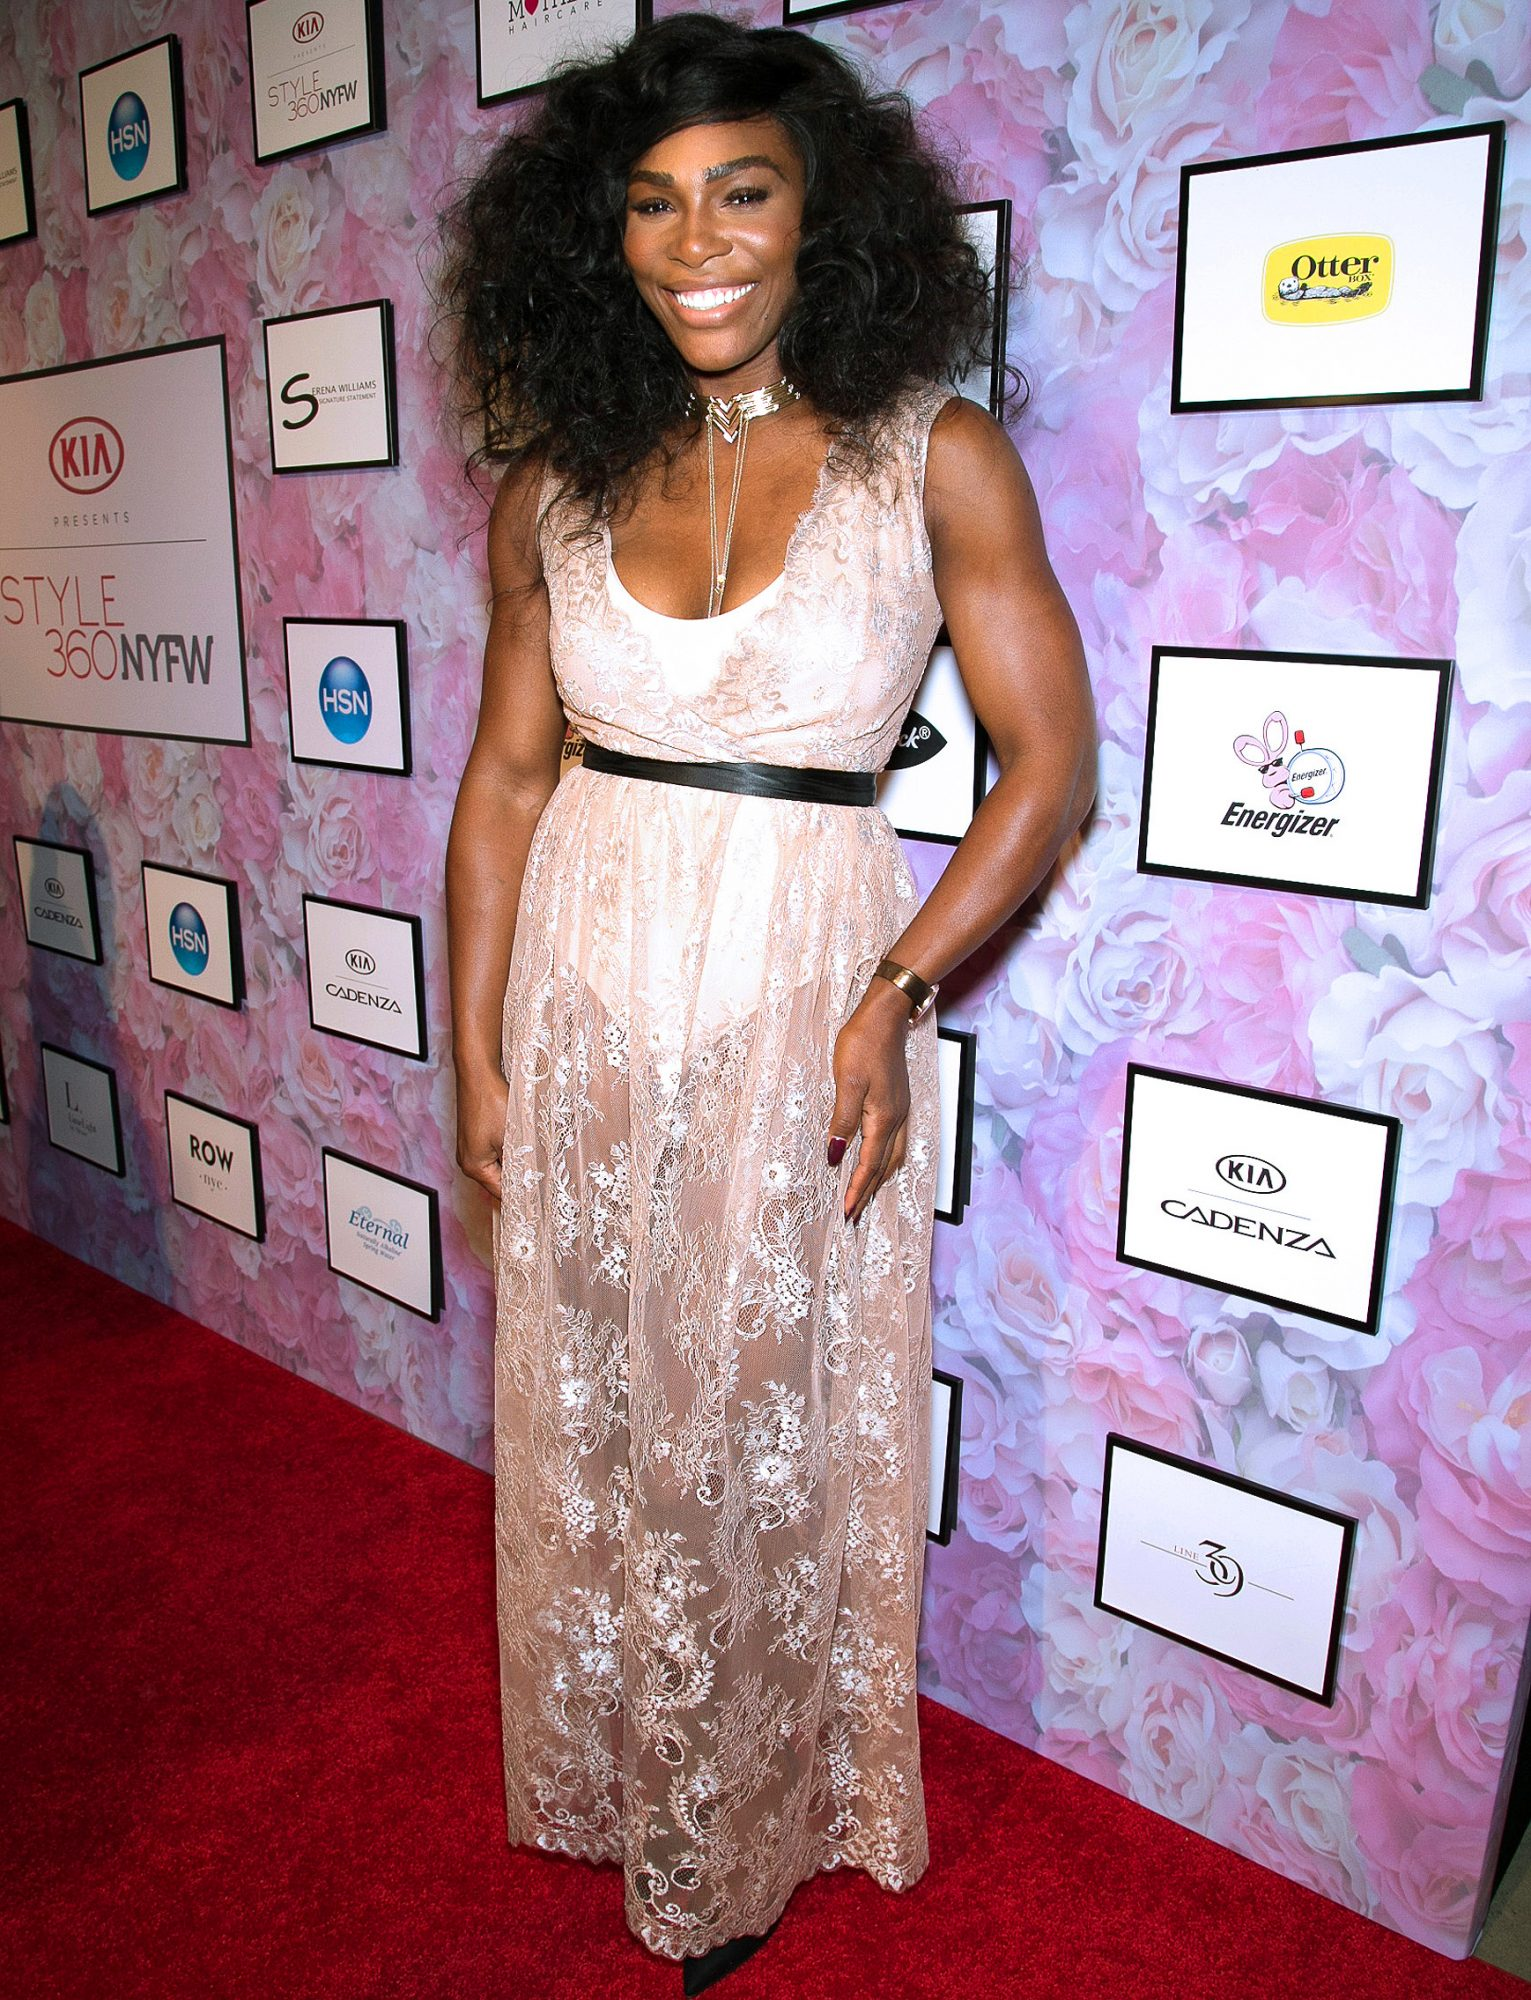 Stars spotted front row and on the red carpet at the Serena Williams Signature Statement Collection by HSN show